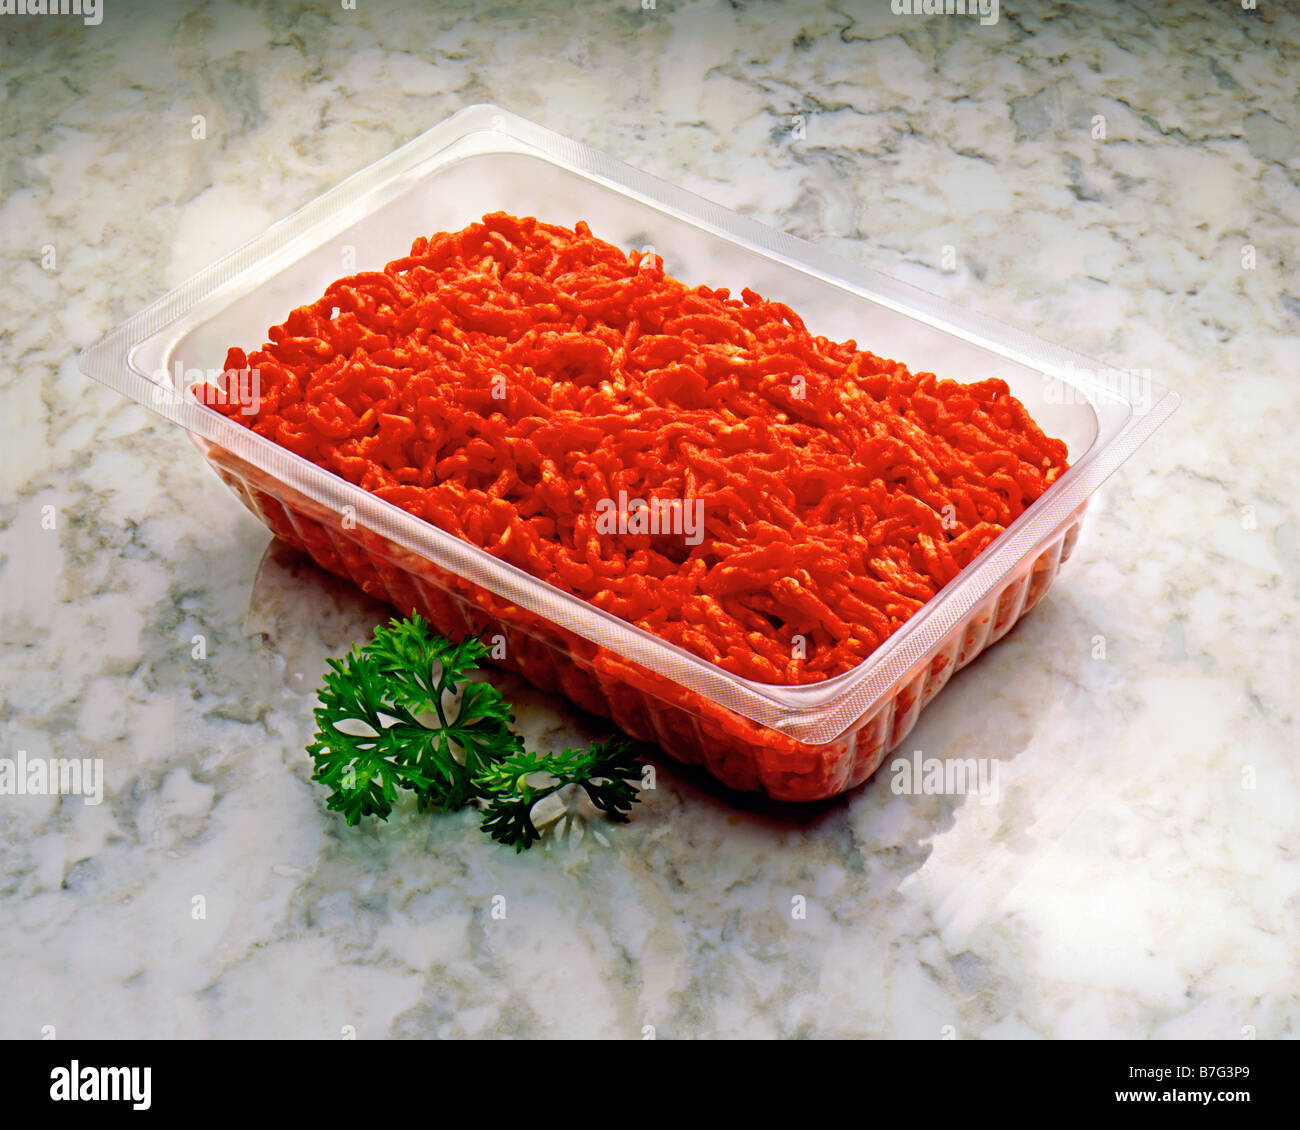 FRESH MINCED BEEF IN A SUPERMARKET PLASTIC CONTAINER , SHOT ON A GREY GRAY MARBLE BACKGROUND WITH A LITTLE PARSLEY - Stock Image